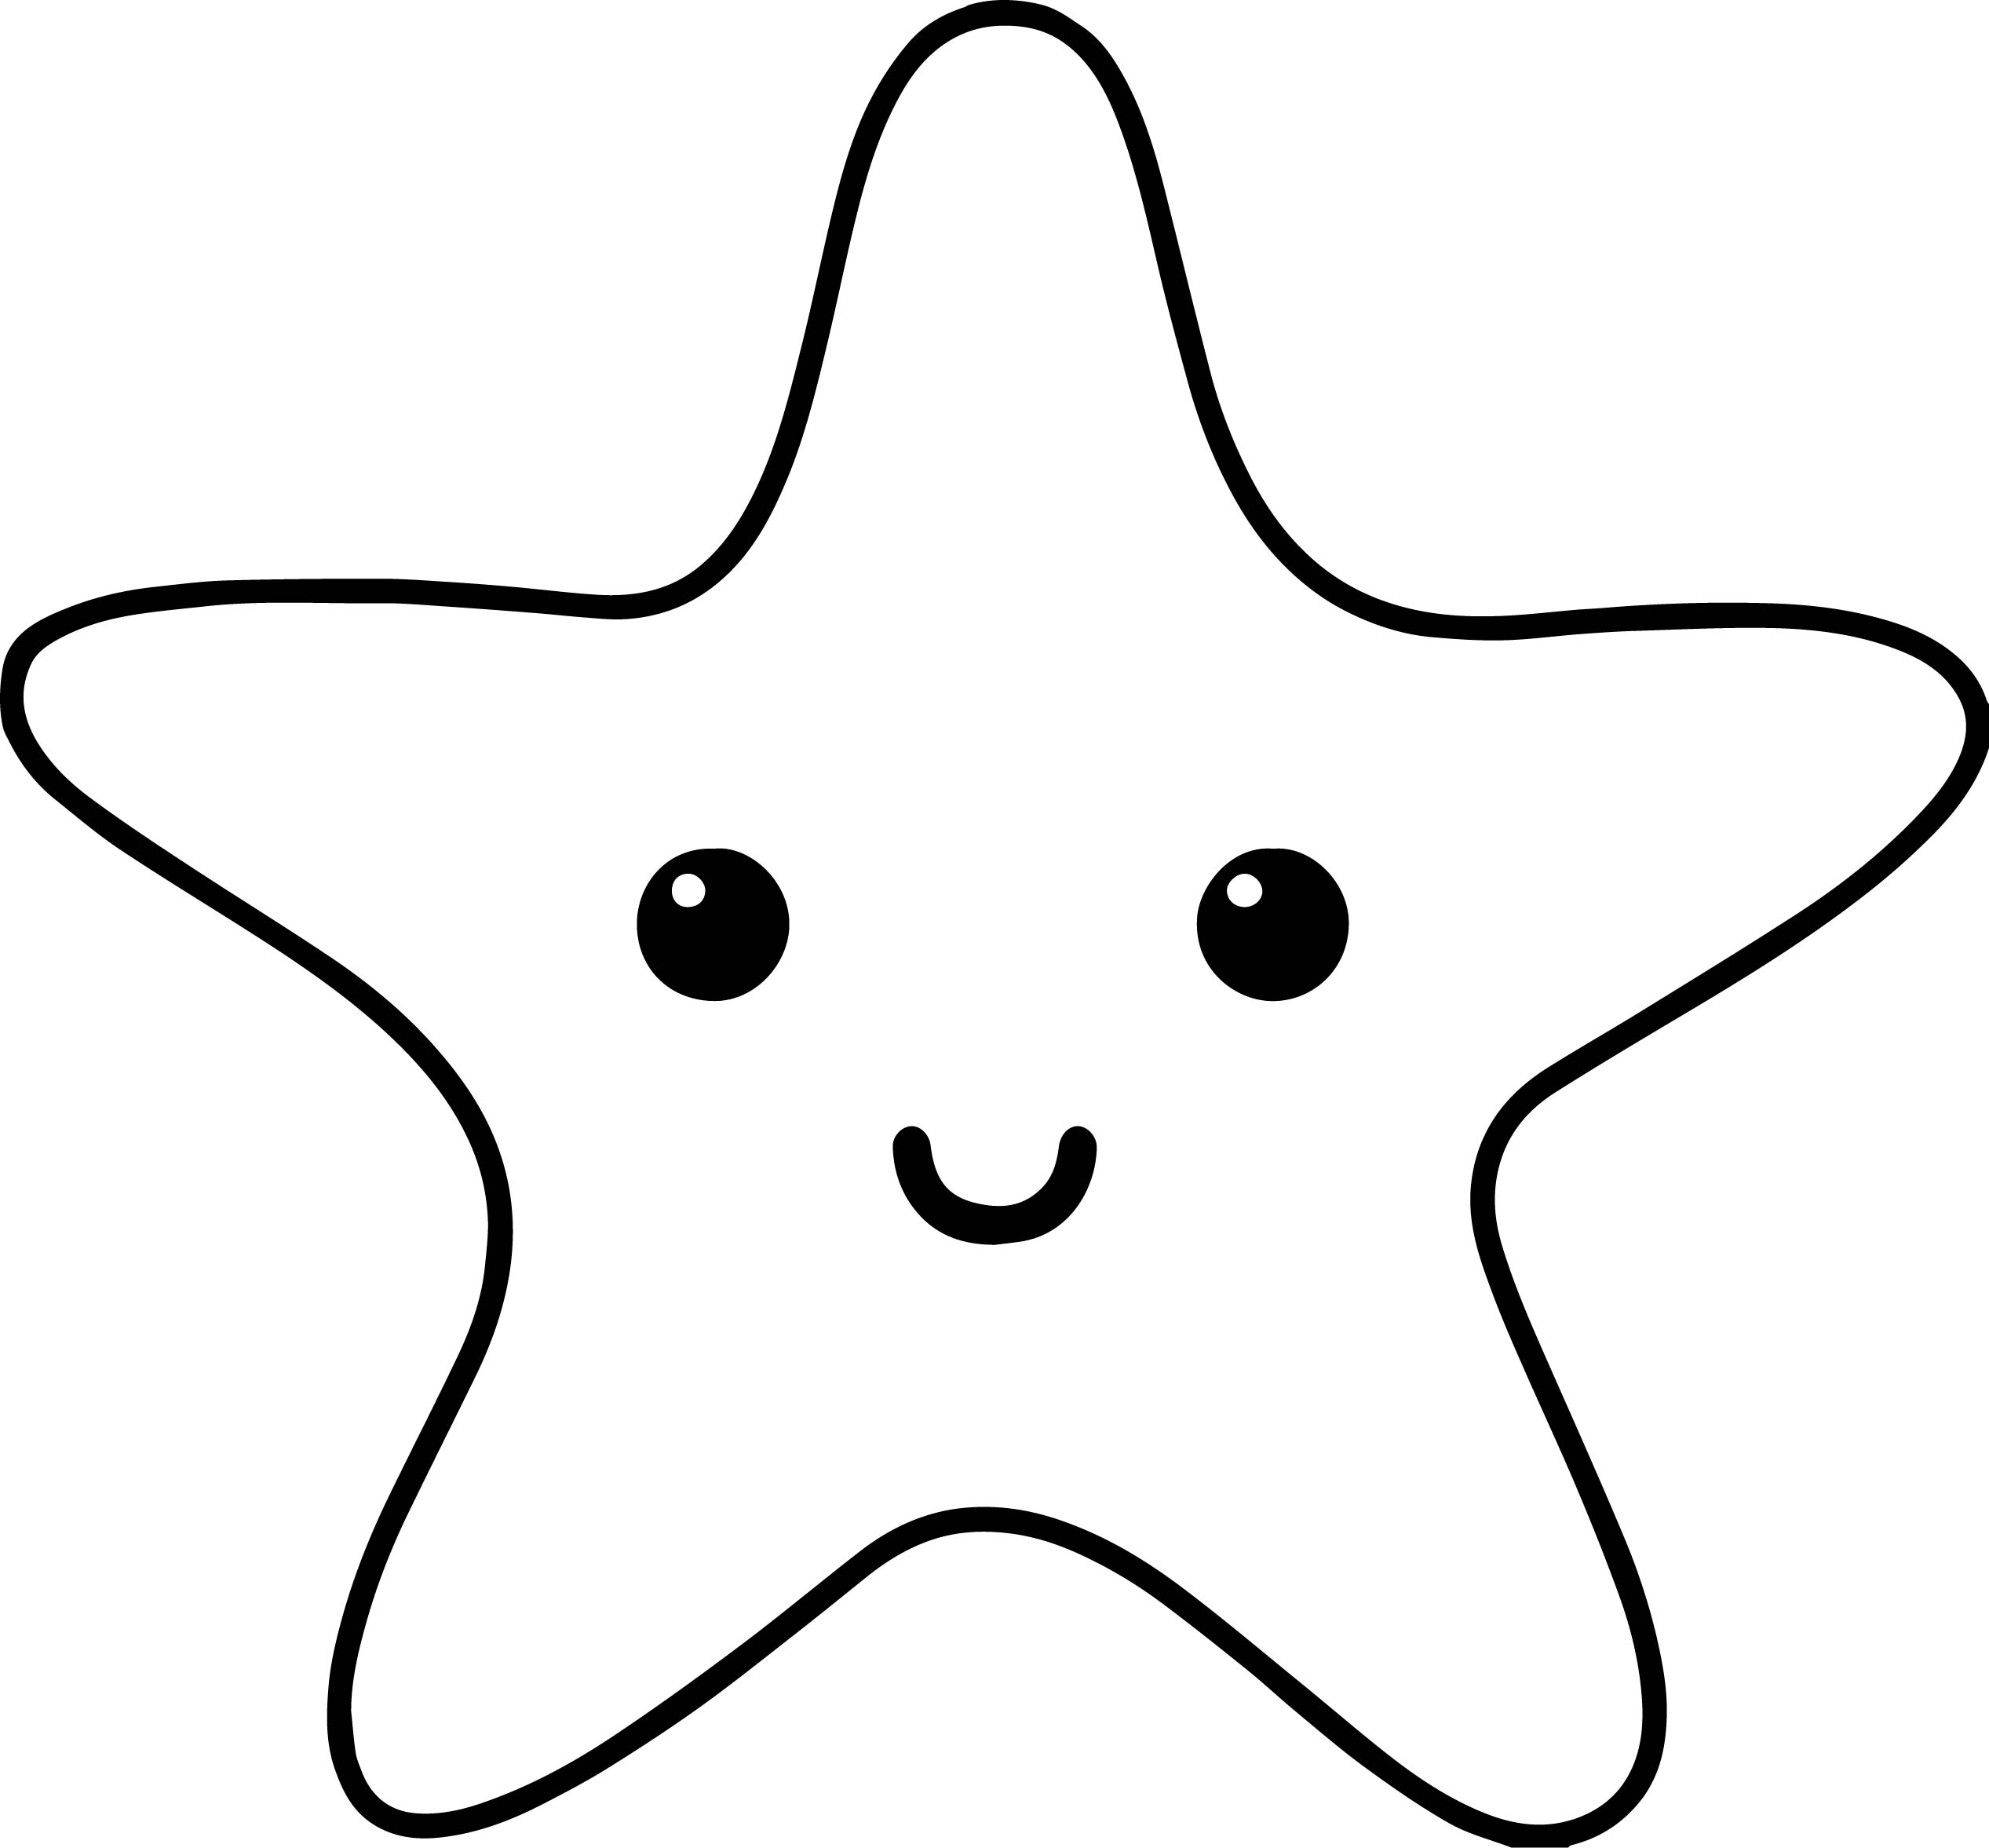 Starfish Coloring Pages Inspiration Starfish Sea Creatures Coloring Page  Wecoloringpage Review